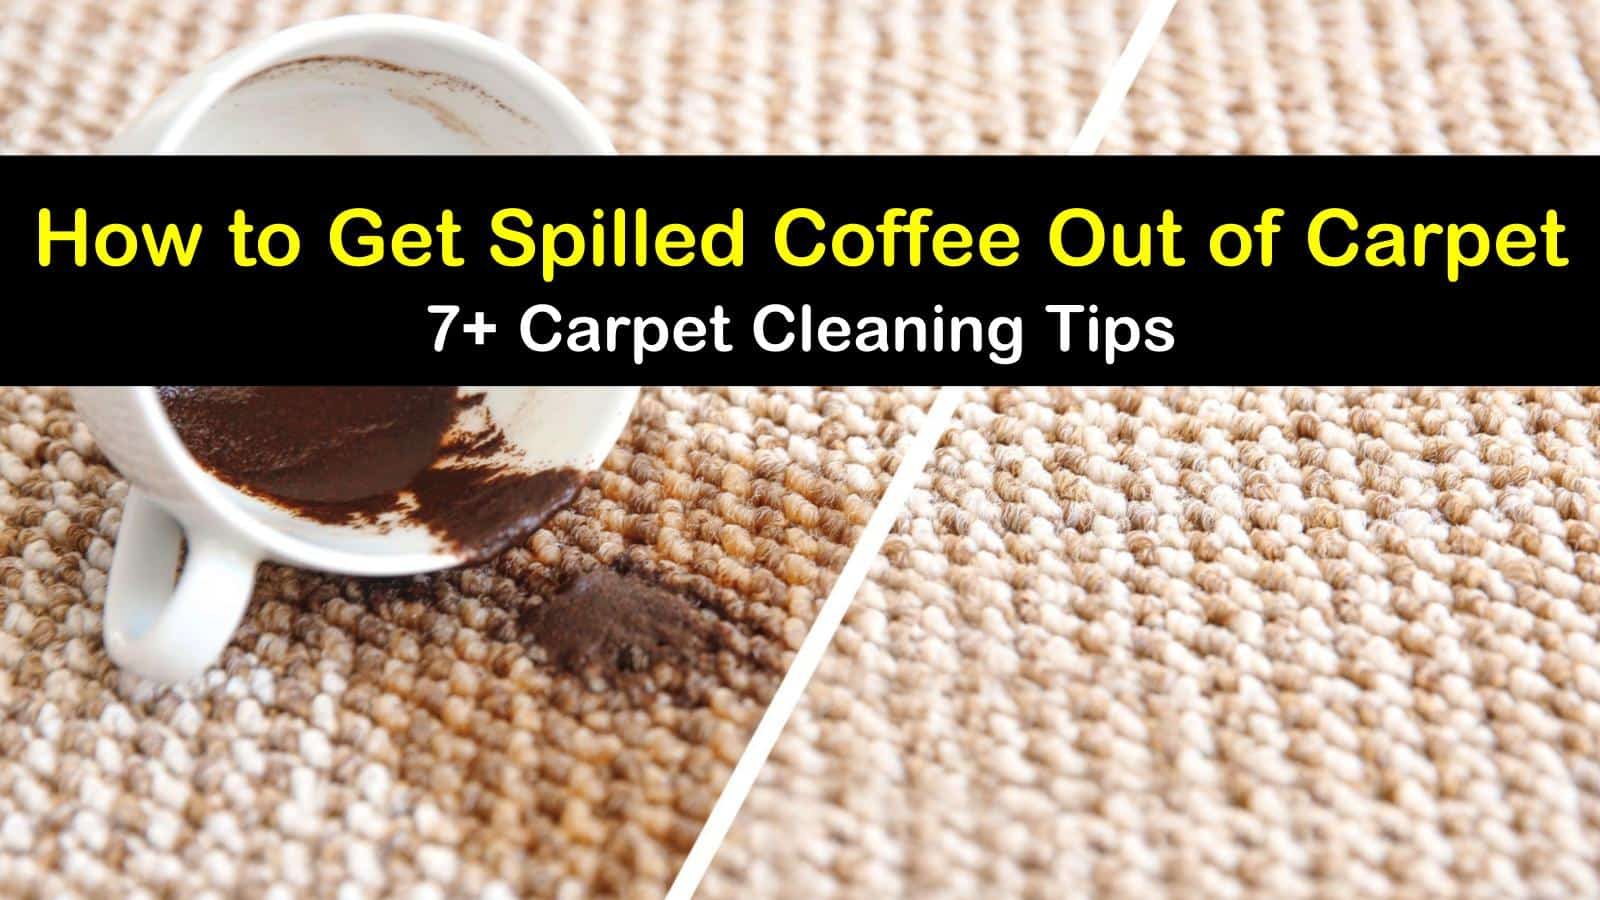 7 Ways To Get Spilled Coffee Out Of Carpet